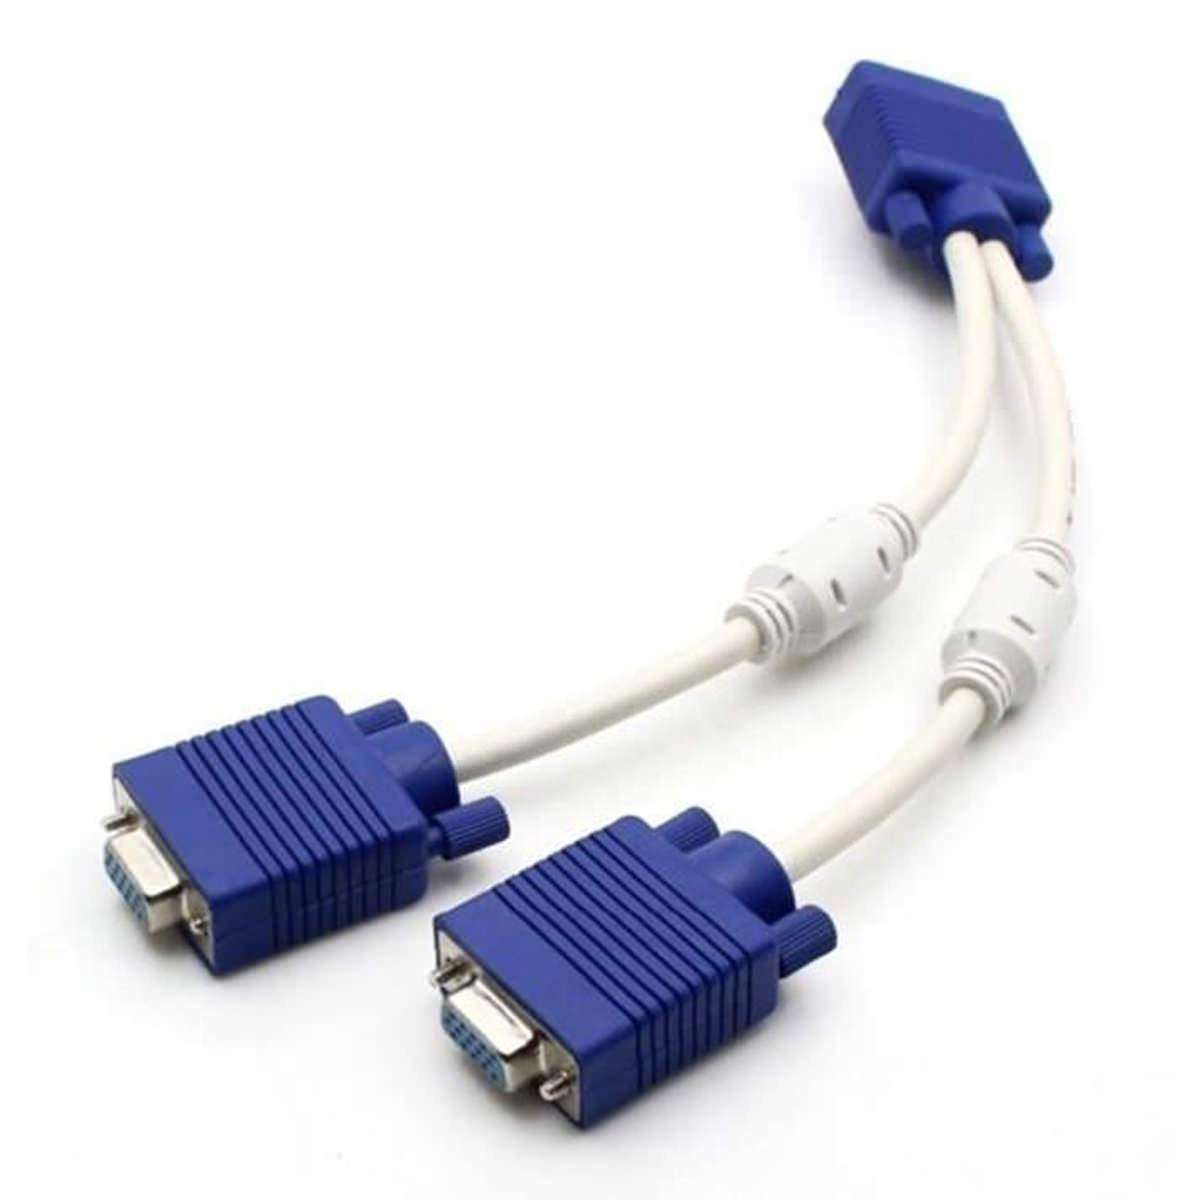 Computer Cables Connectors Online In Pakistan Rj45 Connector Wiring Diagram Success As Well Hdmi Cable Vga Y Od 8mm White